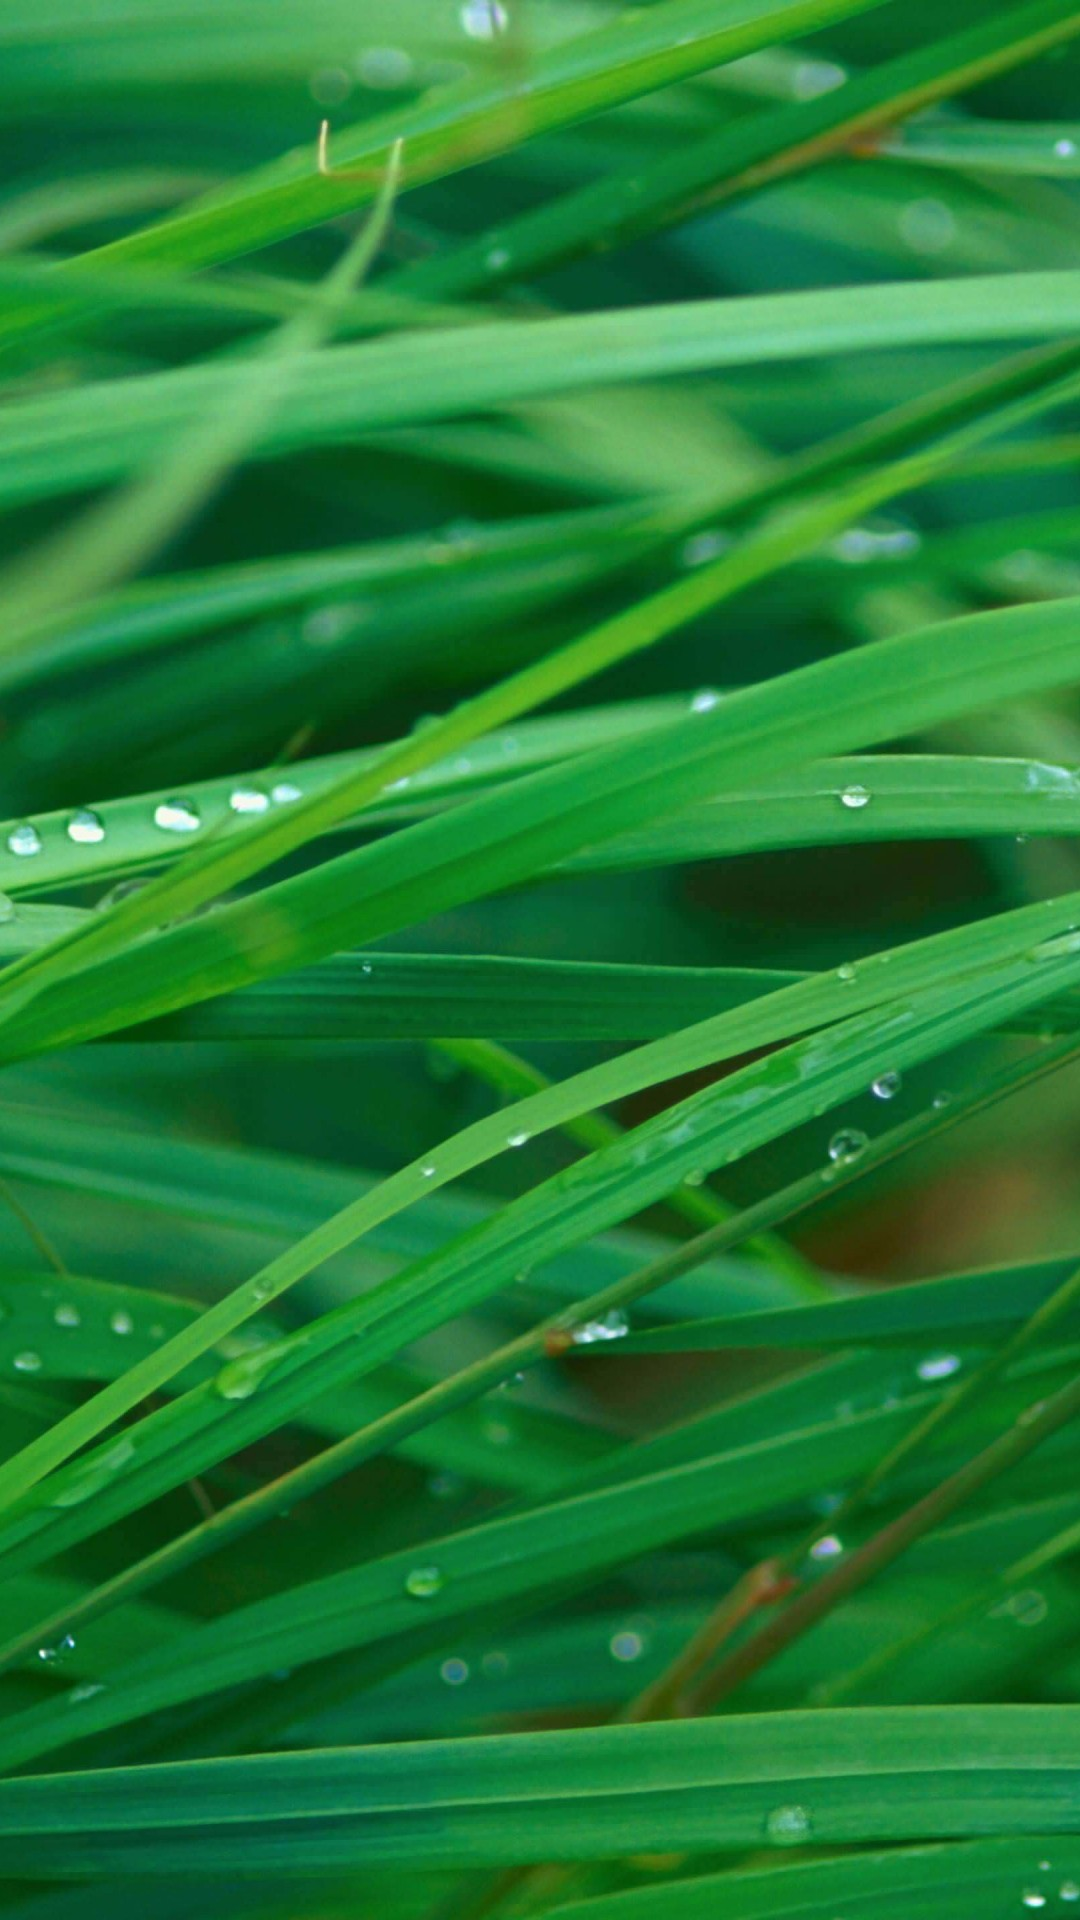 Green Blades Of Grass Wallpaper for SAMSUNG Galaxy S5